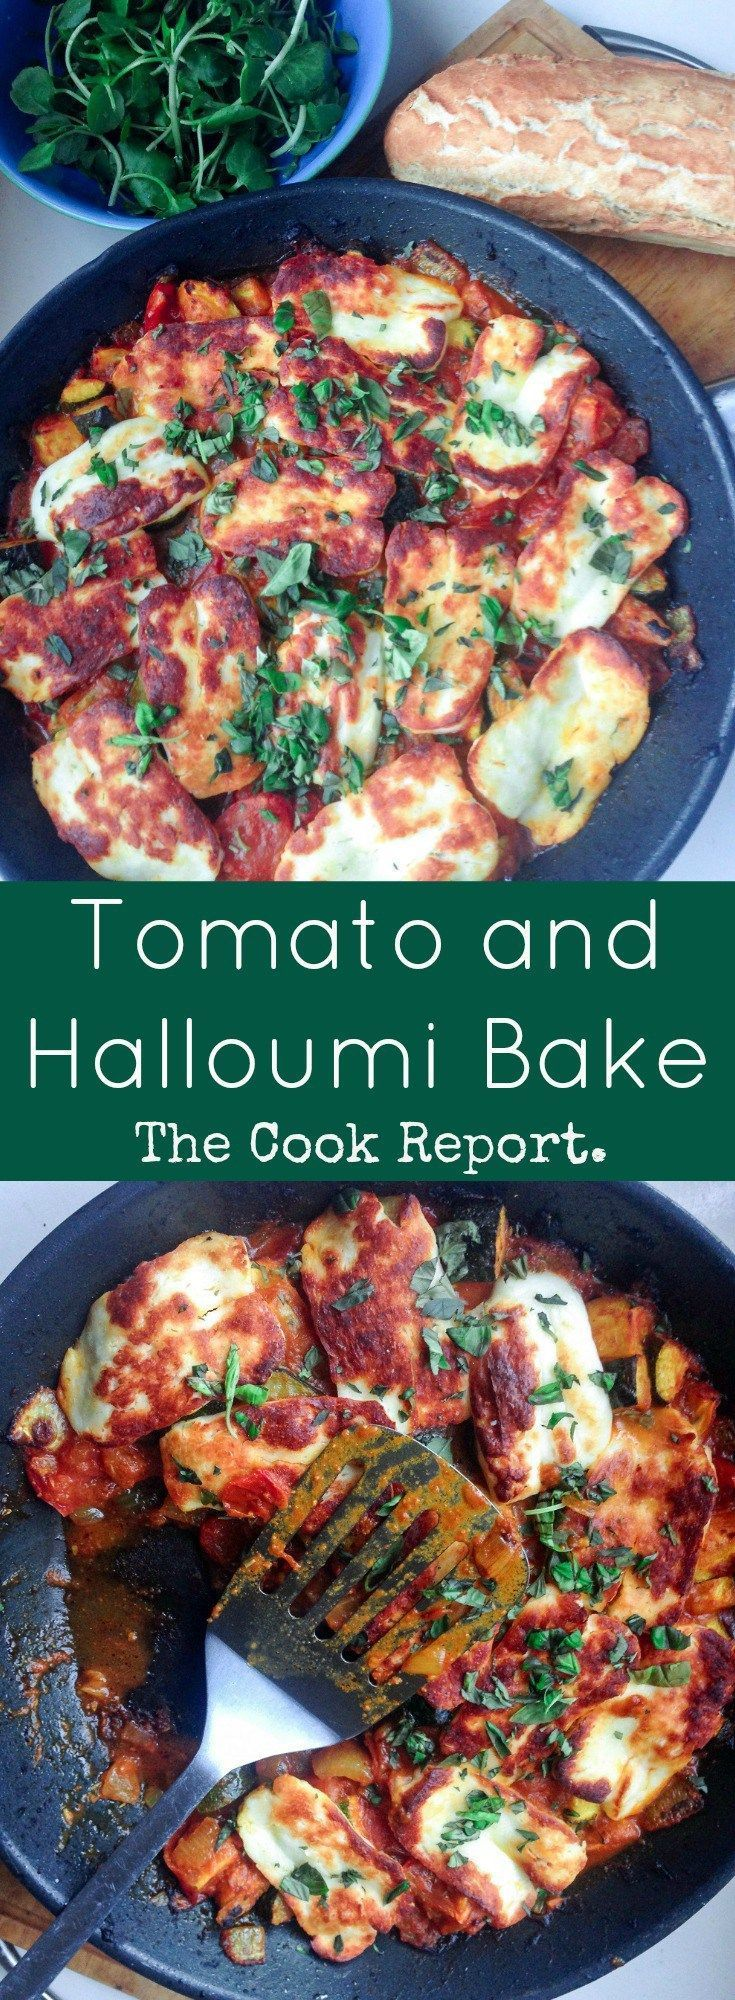 This halloumi bake perfectly combines the healthy freshness of vegetables with the chewy, salty halloumi for a delicious vegetarian dinner.